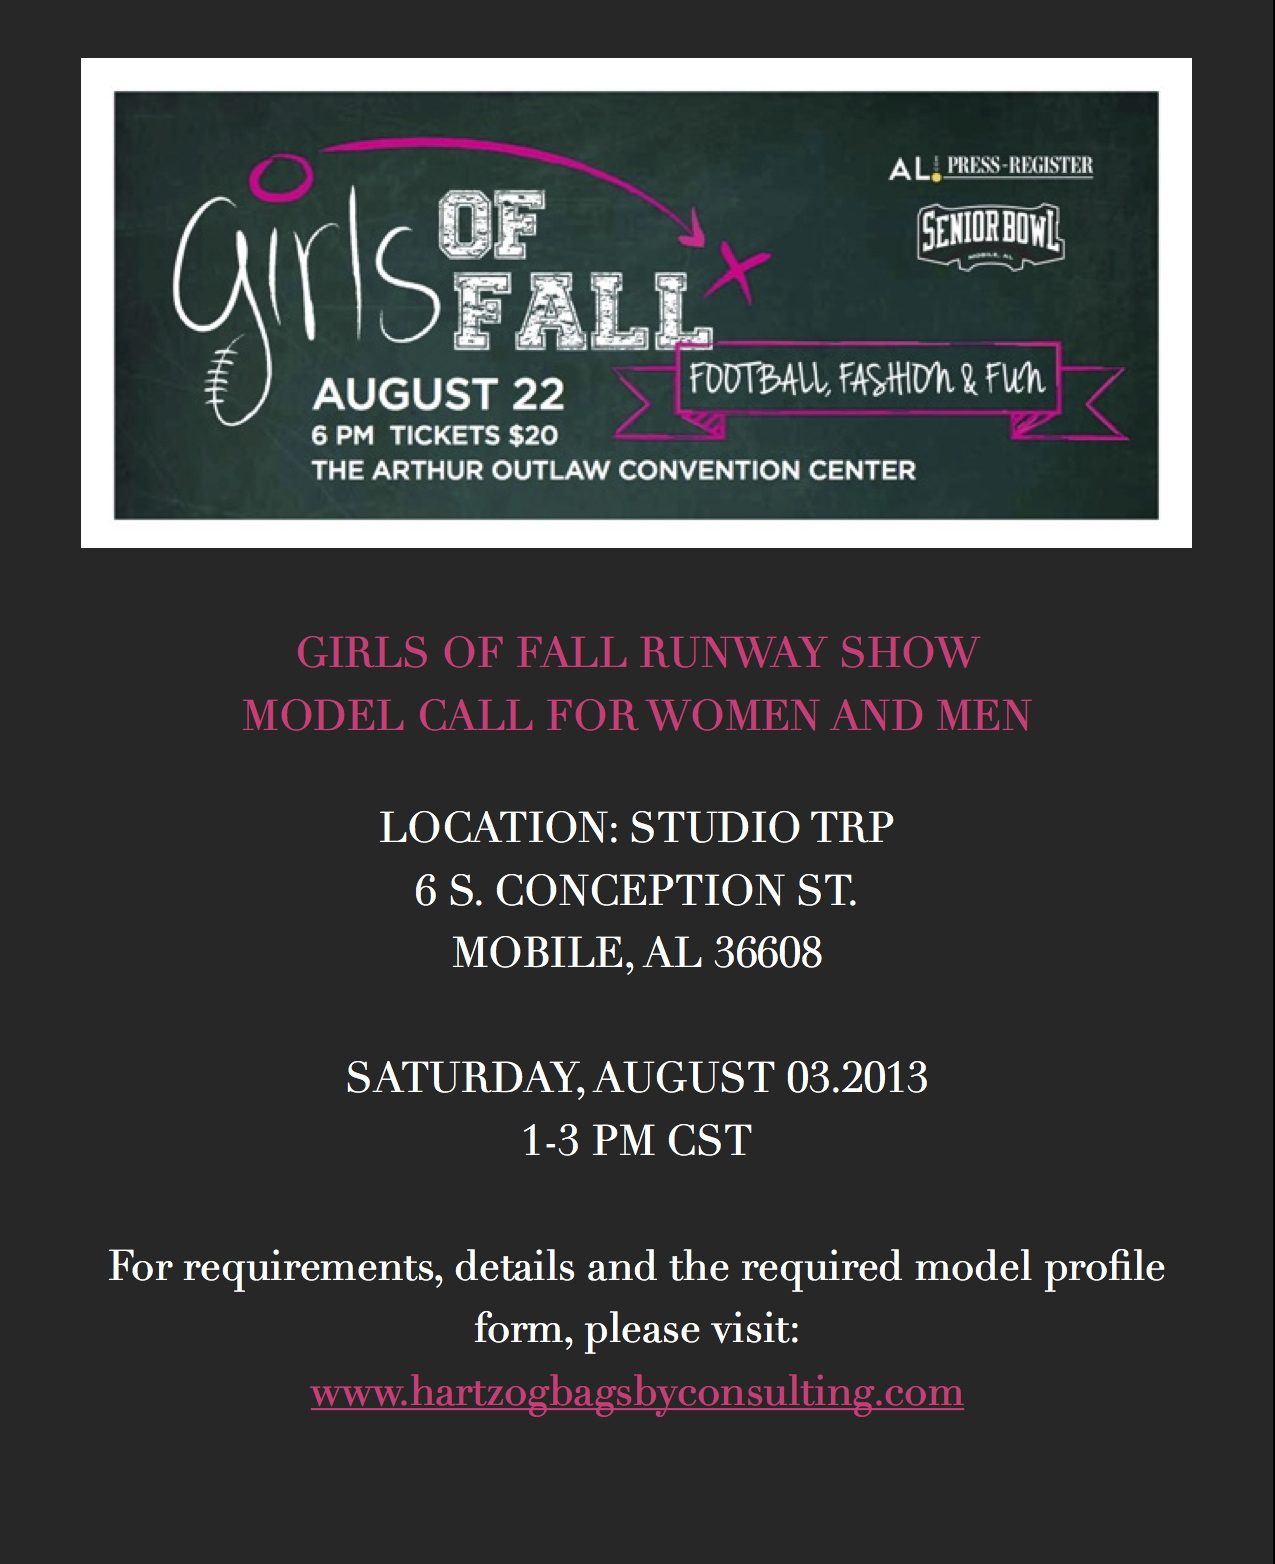 Model Call Location & Time Announced | Girls of Fall Fashion Show